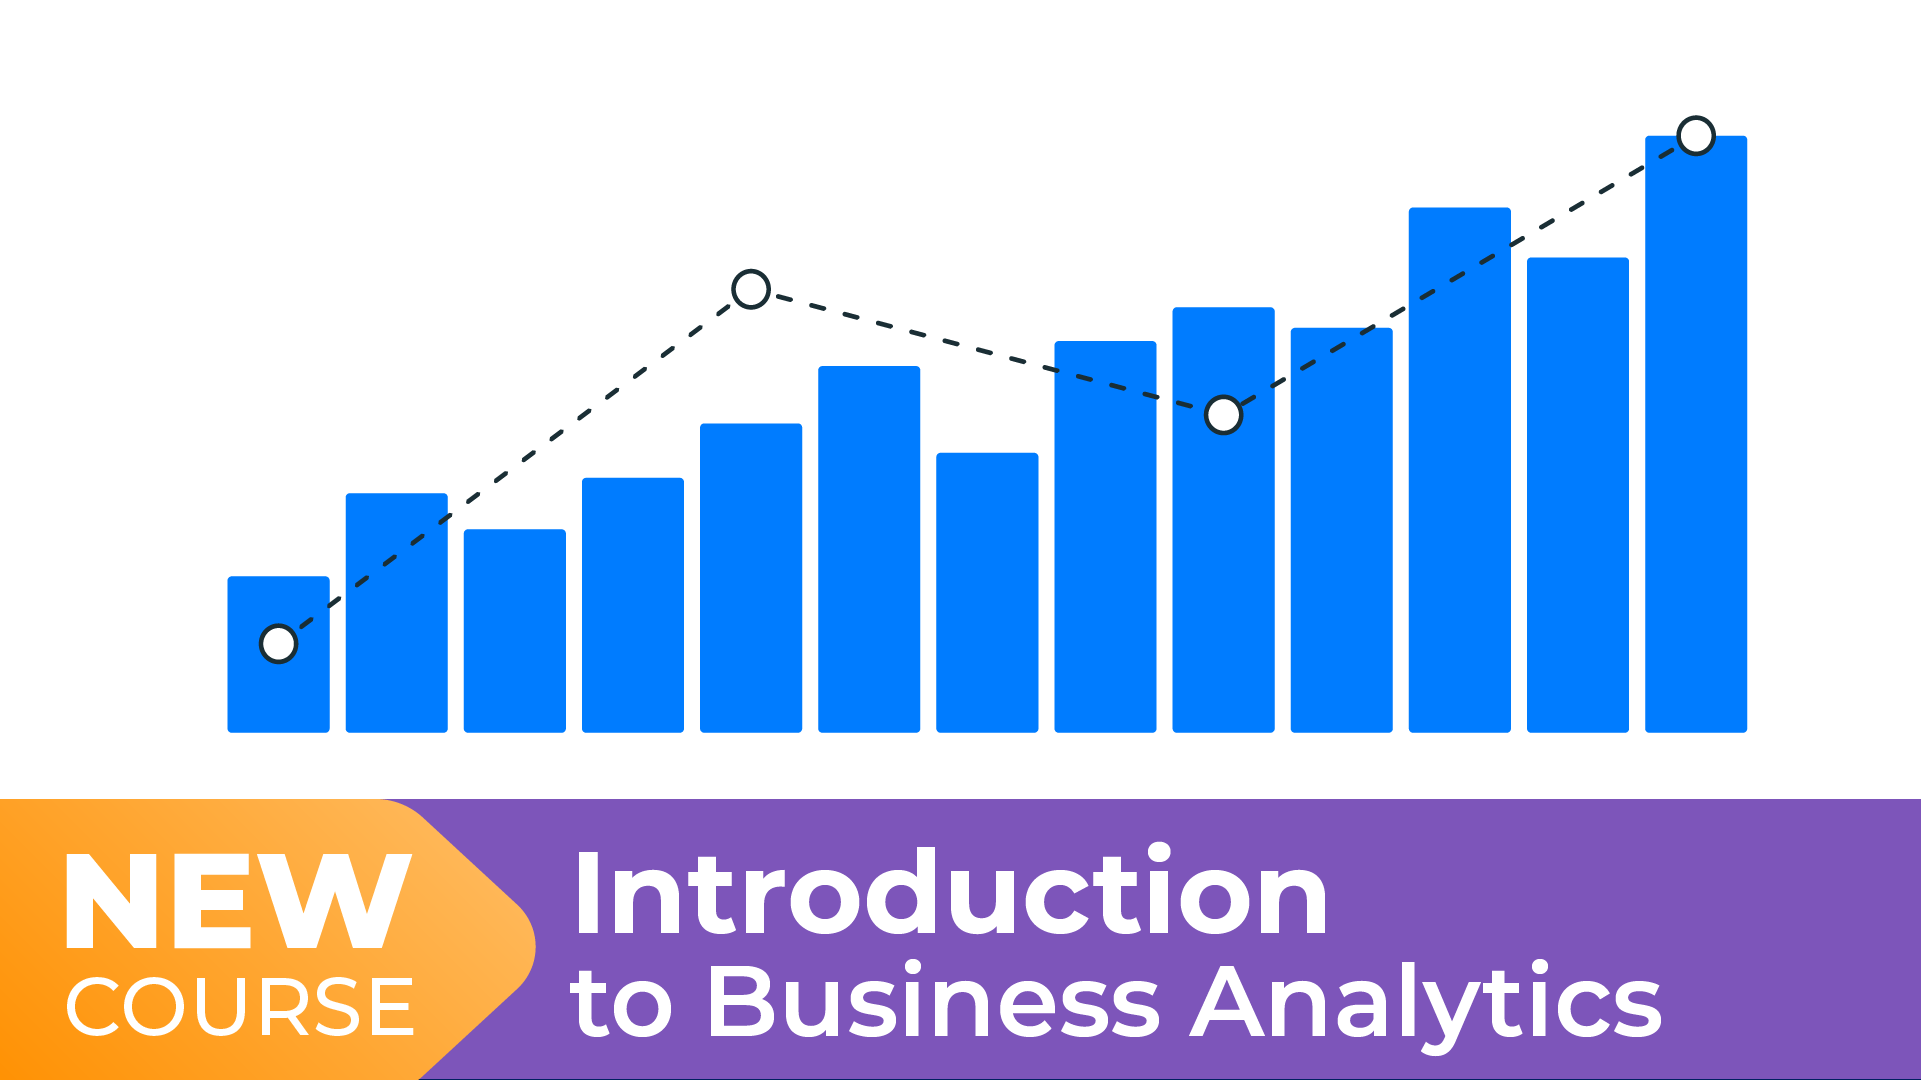 365 Data Science Introduction to Business Analytics Course